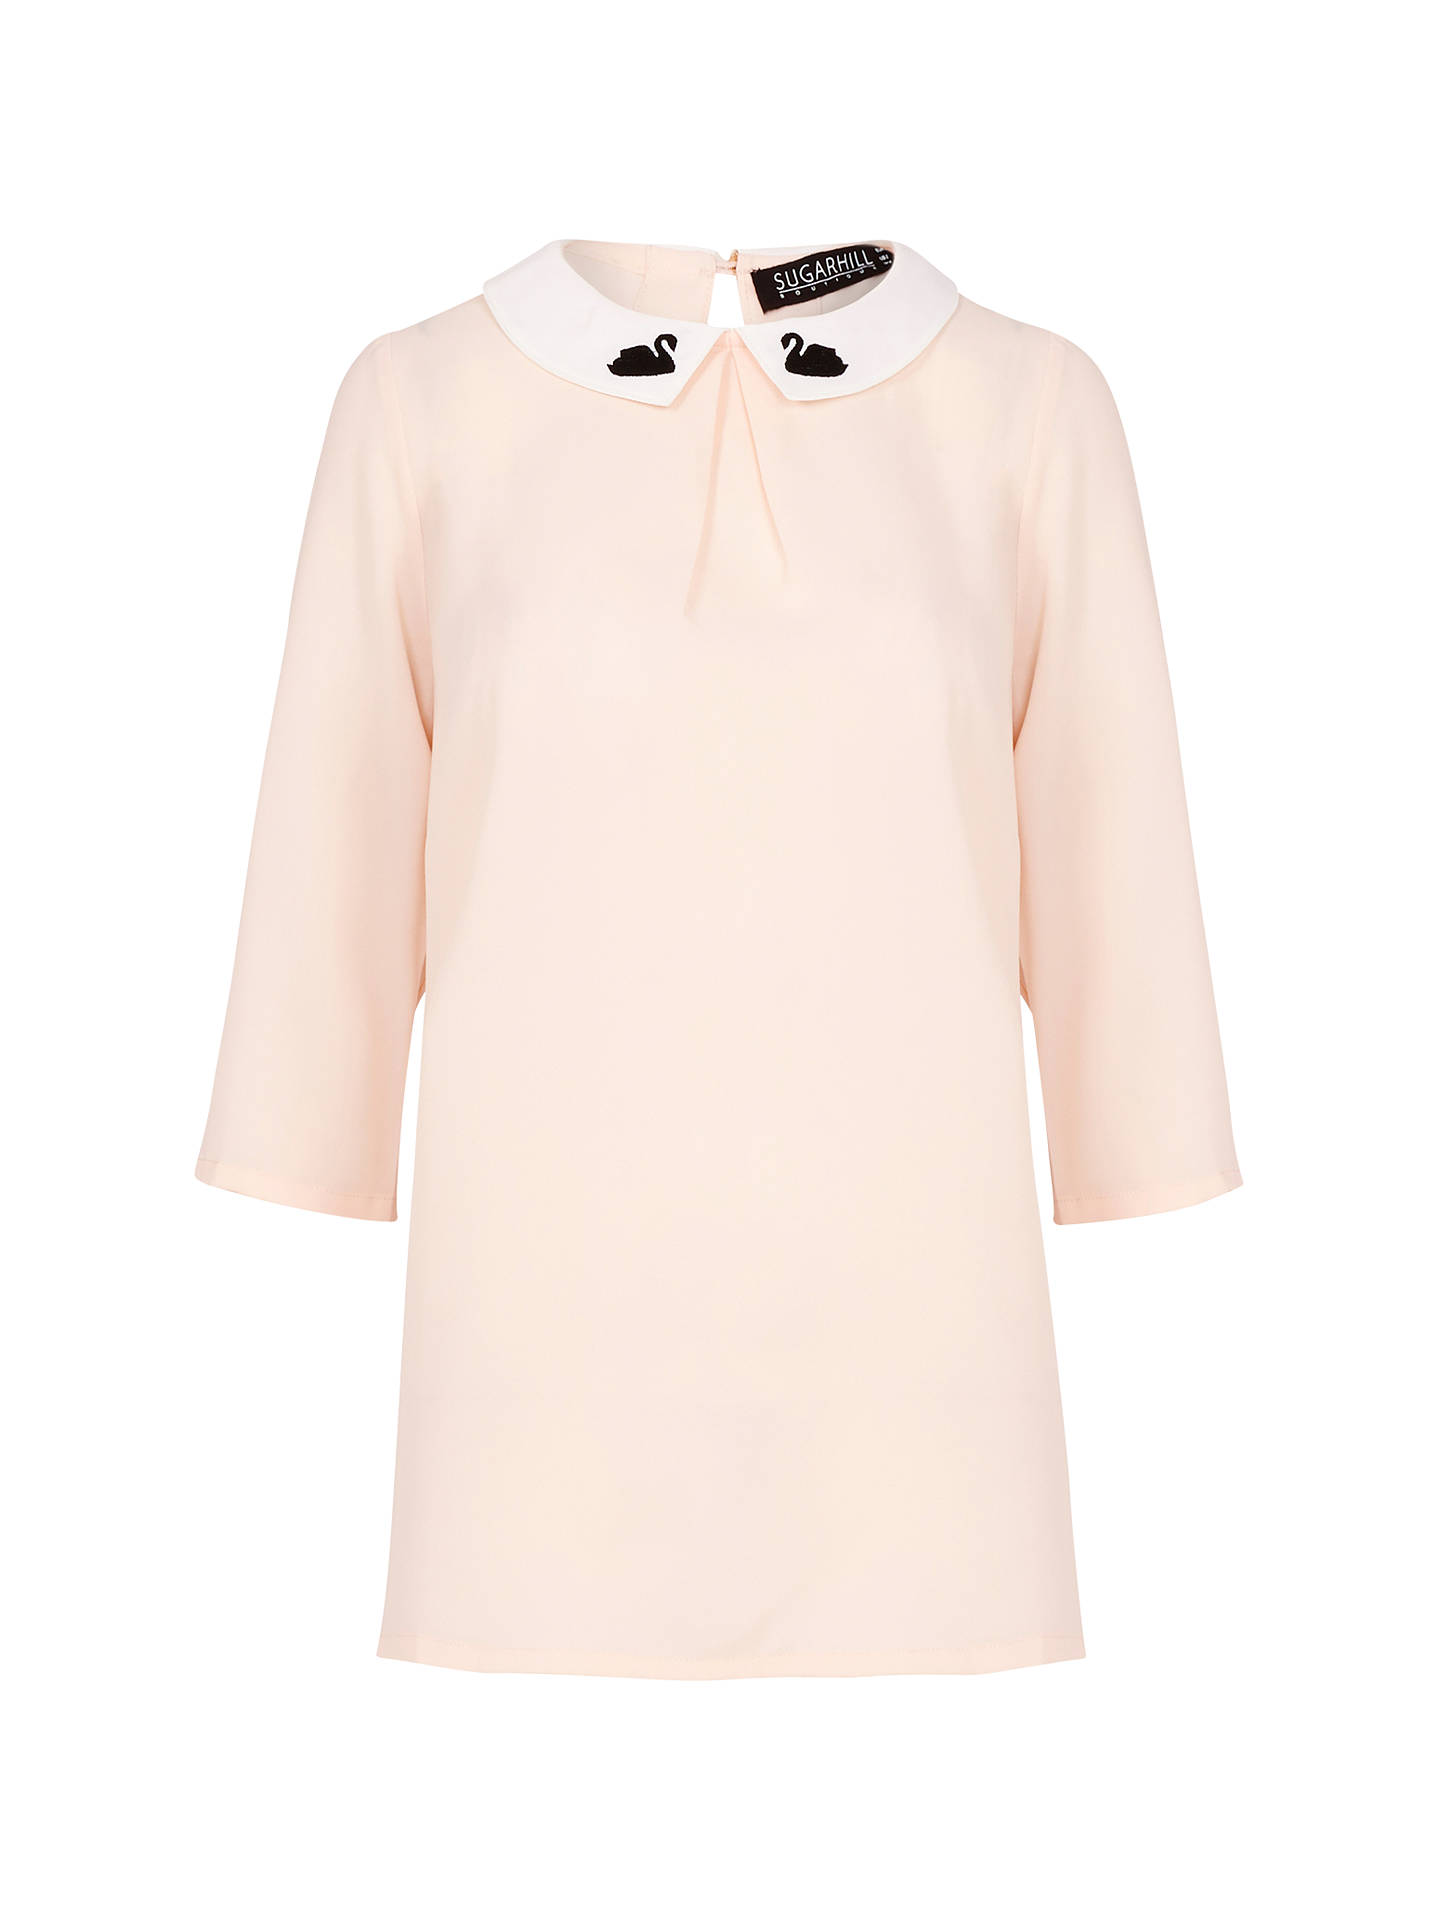 Buy Sugarhill Boutique Nala Swan Top, Pale Pink, 8 Online at johnlewis.com